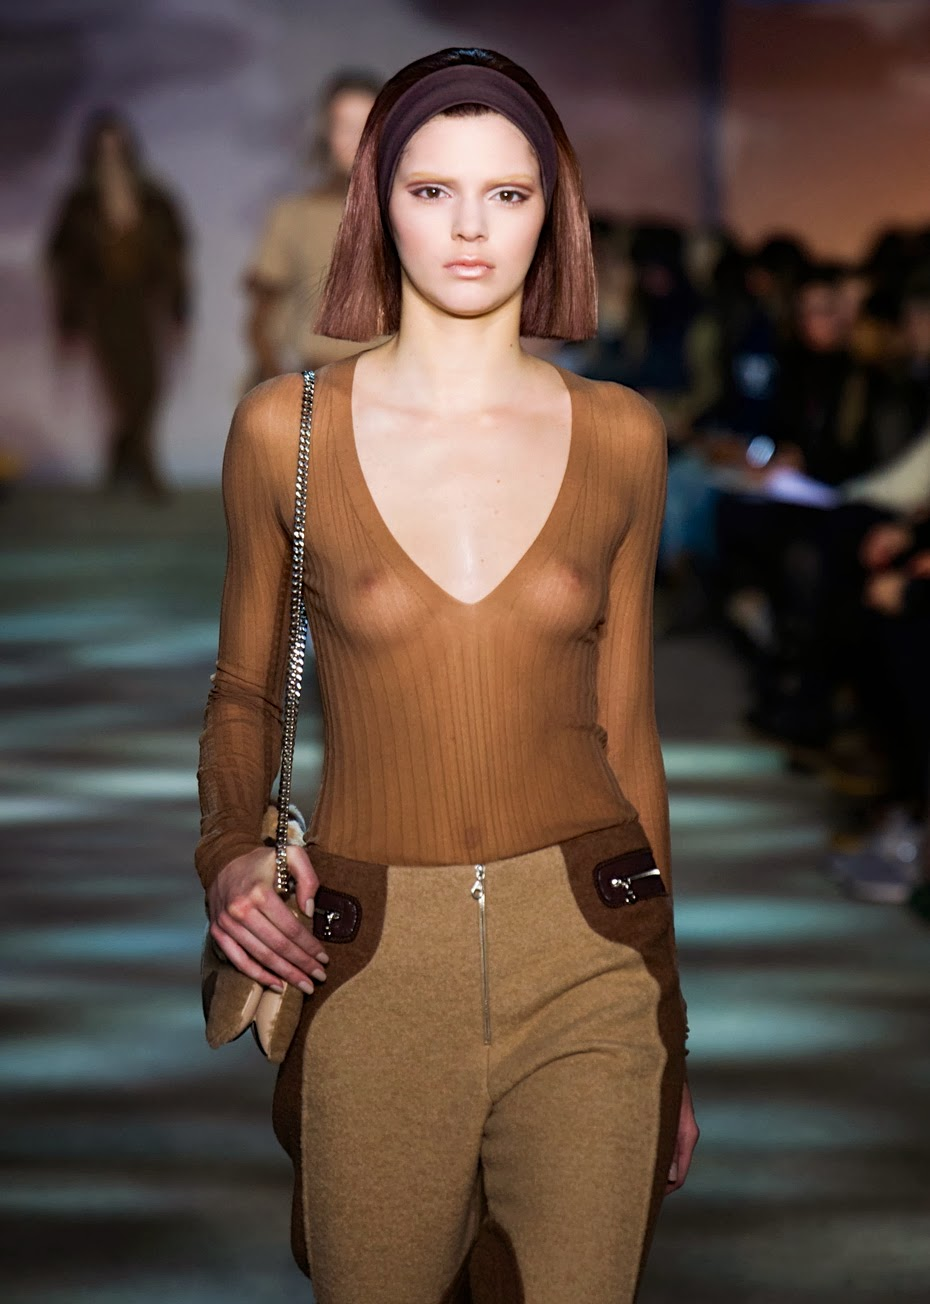 Kendall Jenner See Through Blouse Revealing Her Boobs At Marc Jacobs Fashion Show In New York